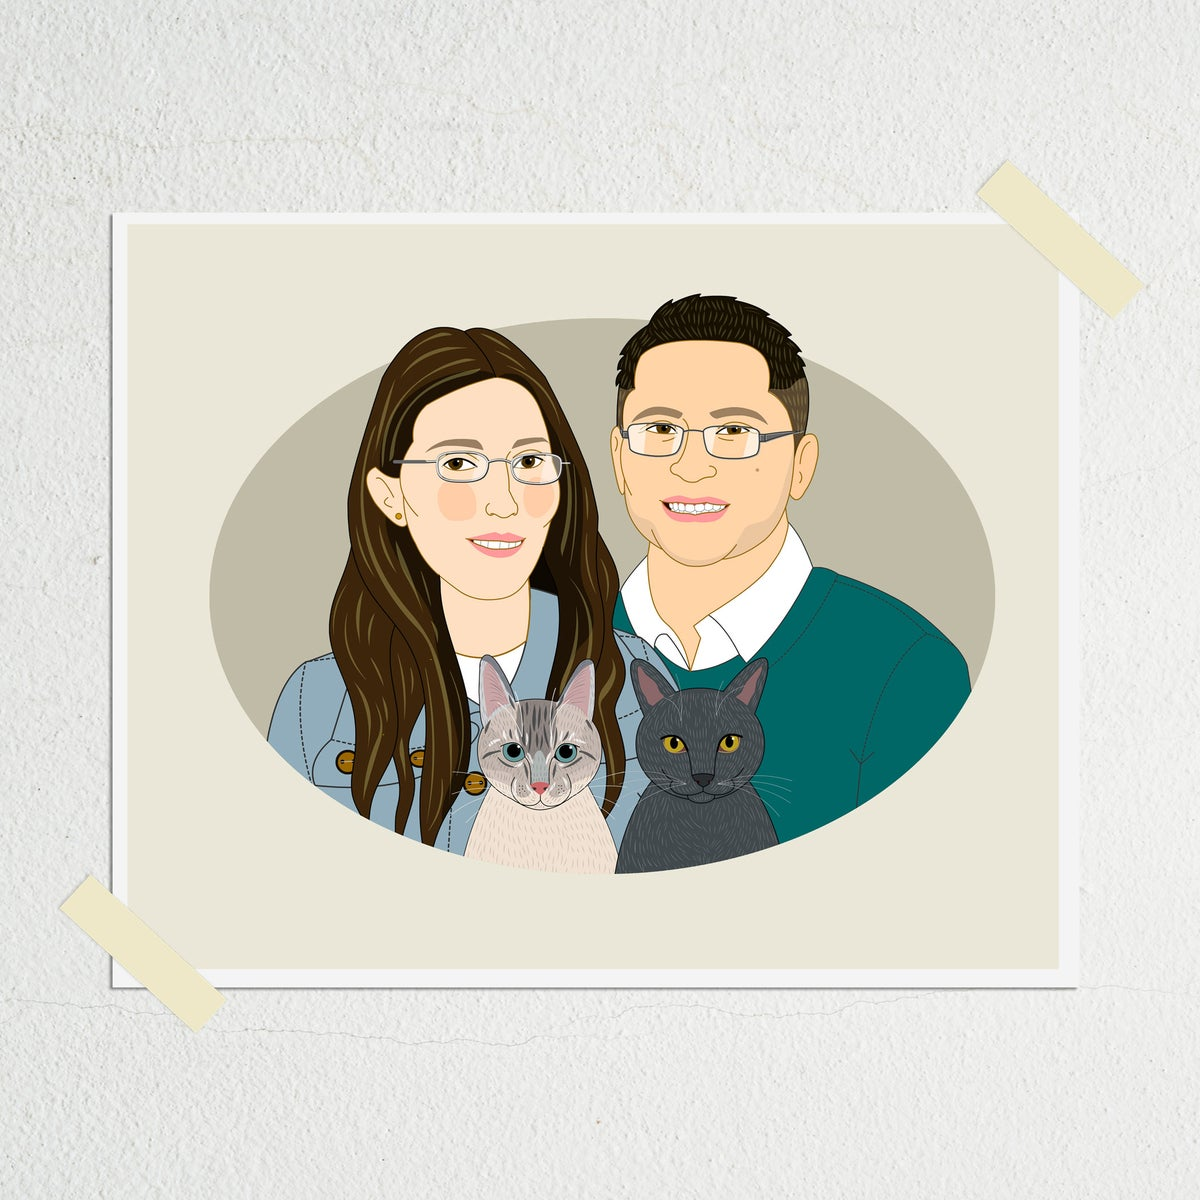 Image of Couple's portrait with 2 dogs or cats.